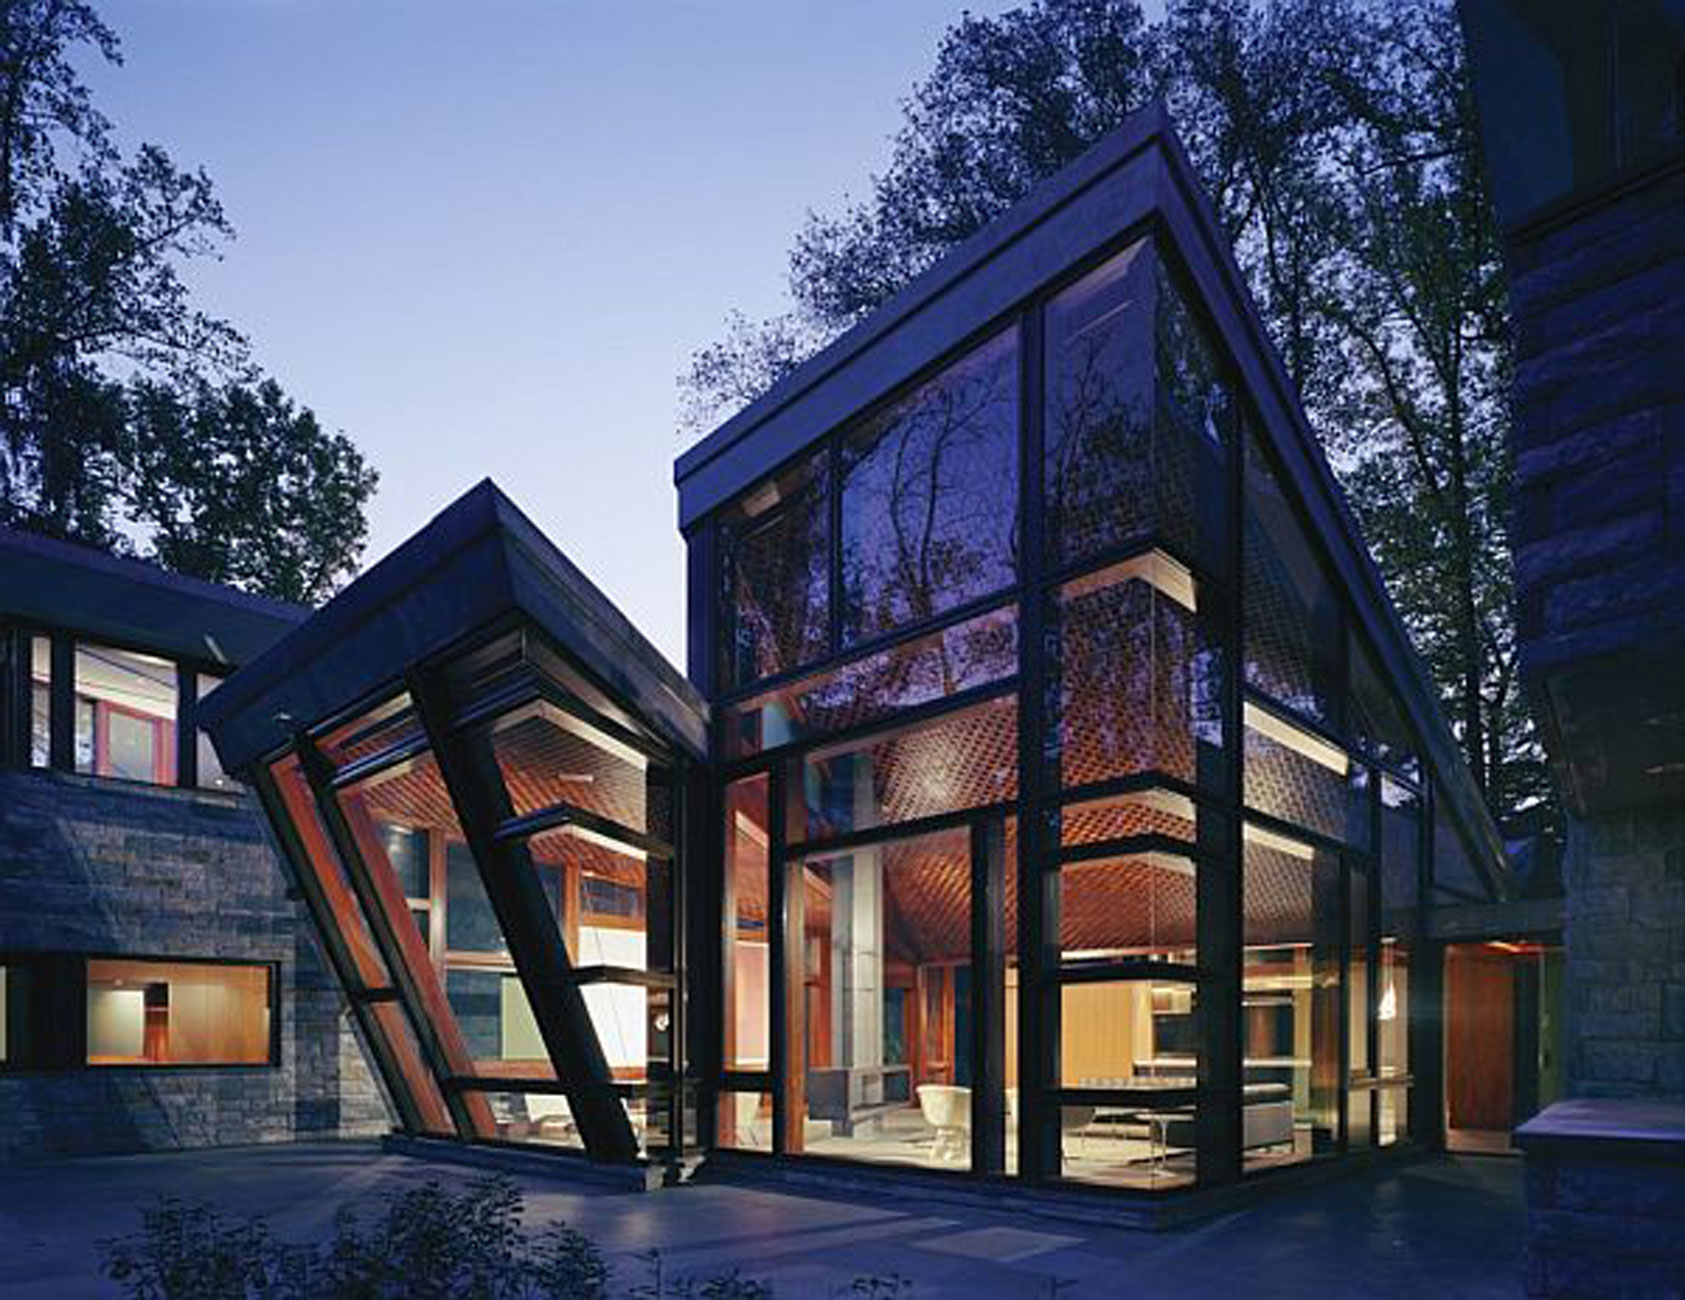 Sunday evening art gallery blog glass houses humoring for Cool house designs